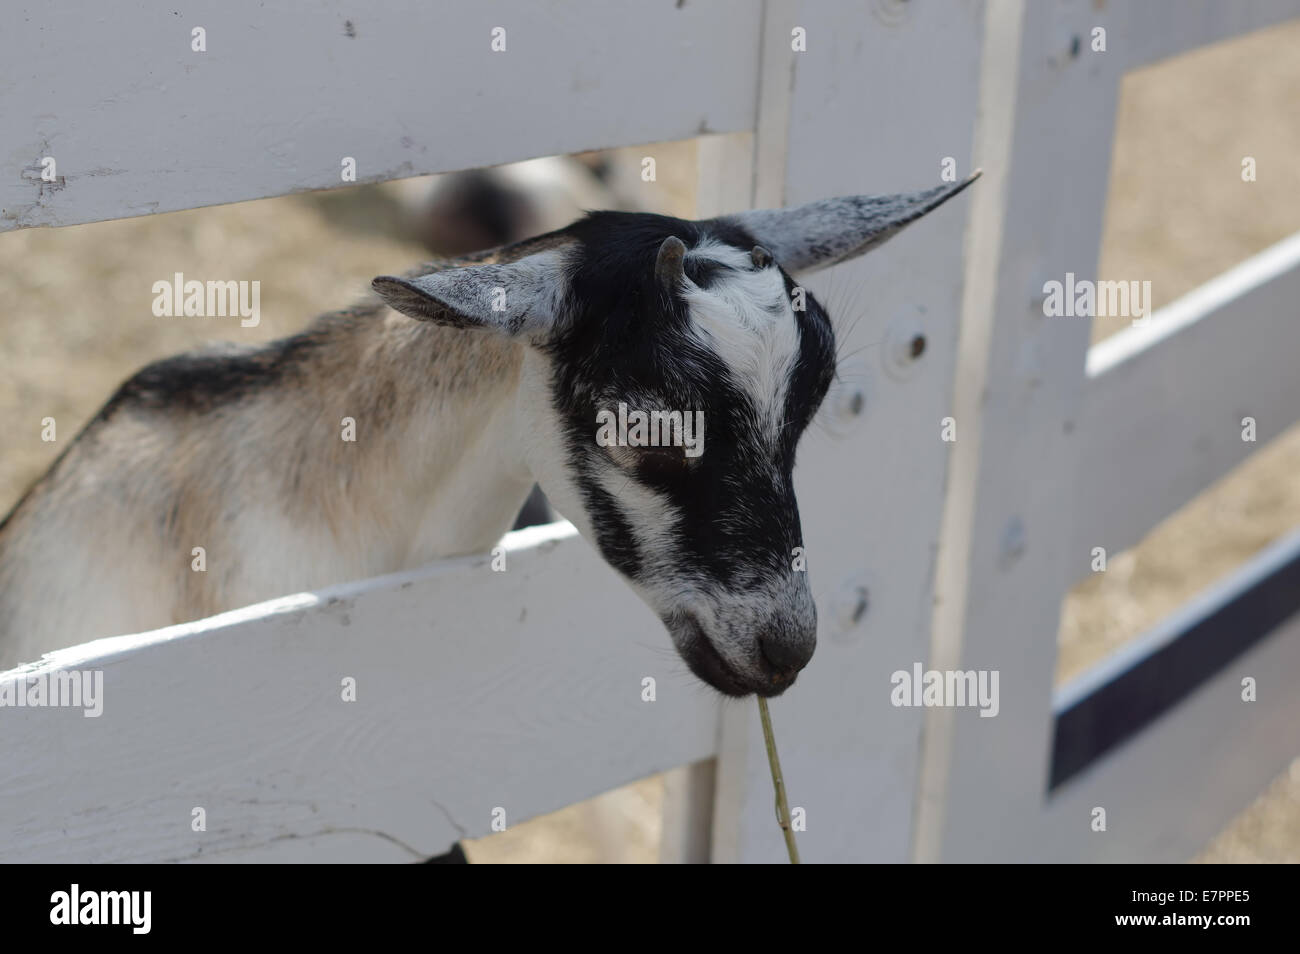 Mini  /  pygmy goats - Stock Image